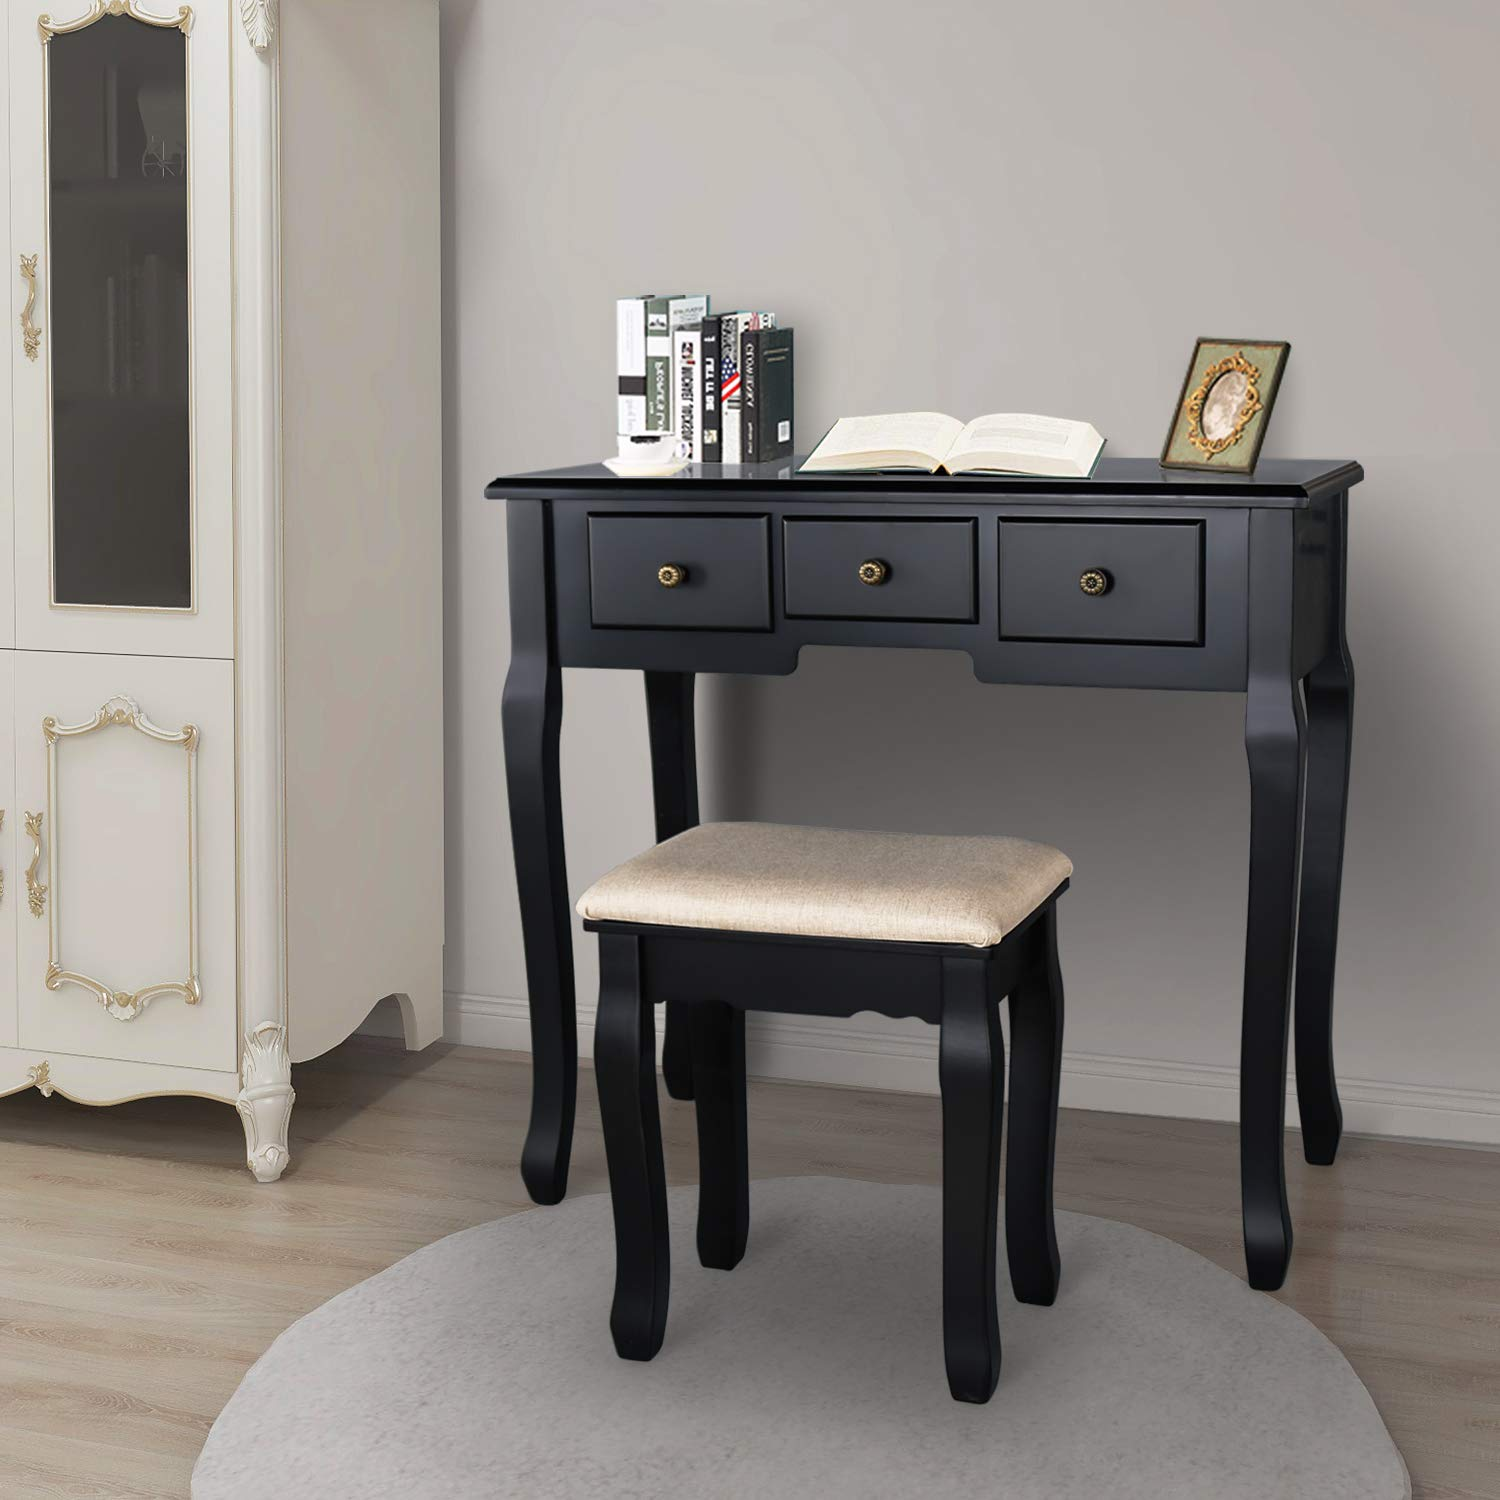 Benyong Vanity Table Set Dressing Table Makeup Set Multi-Functional Writing Desk Removable Top Organizer with 360 Rotating Mirror, 5 Drawers Cushioned Stool Set Black